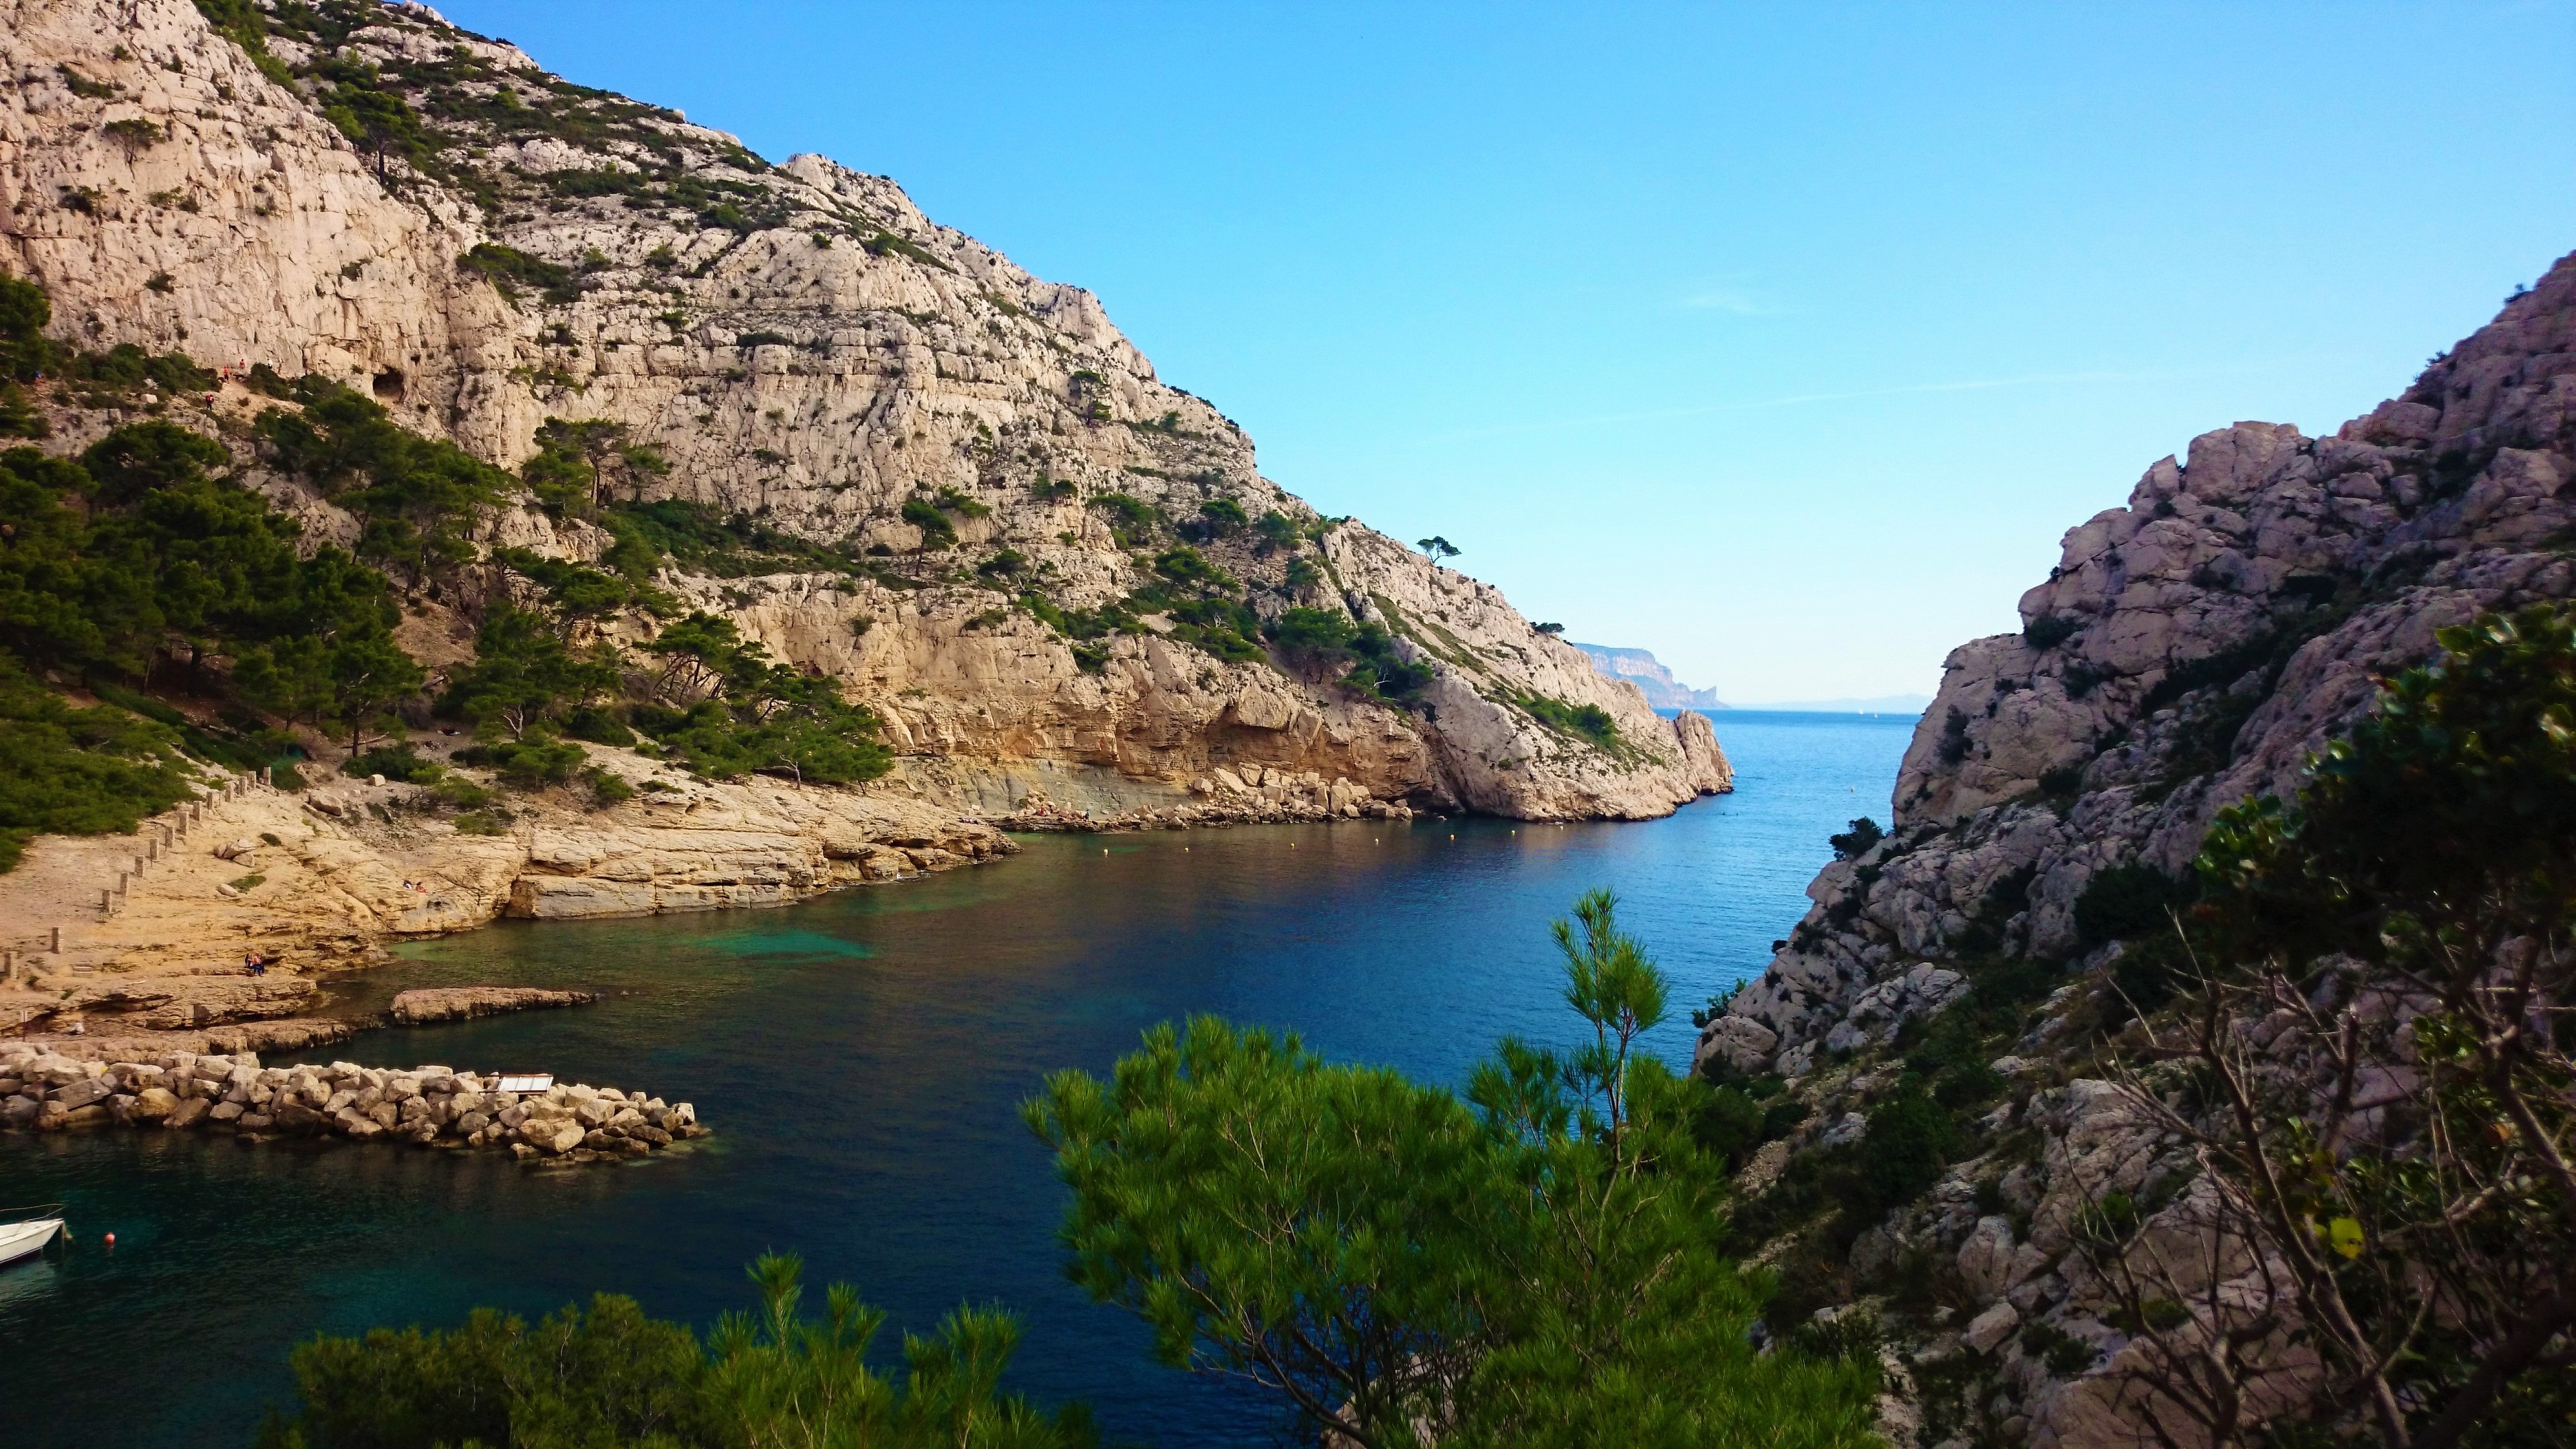 70/Photos/Photos_Tourisme/calanques_marseille.jpg